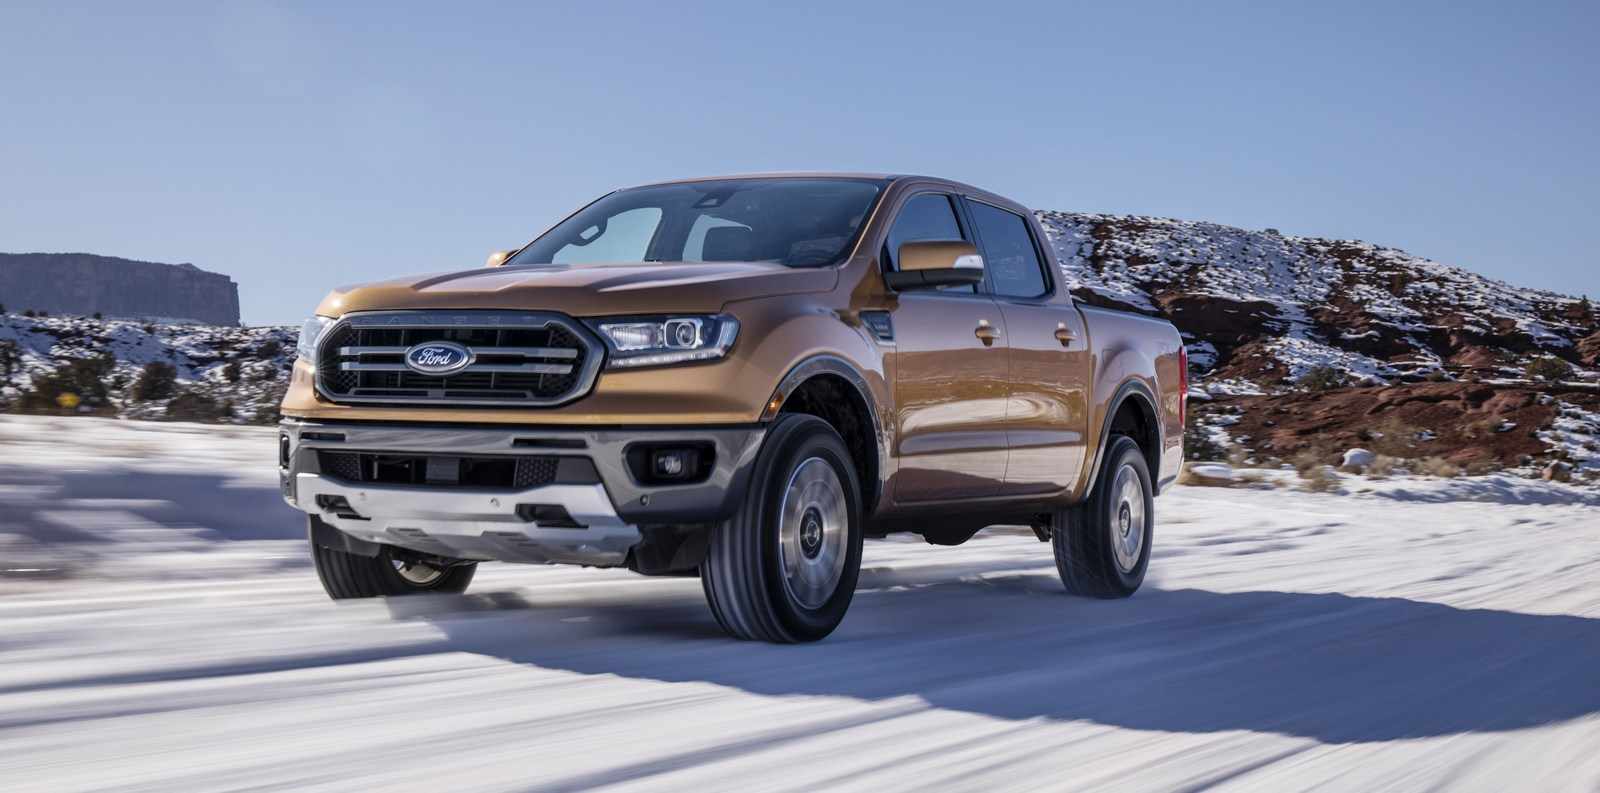 ... 2019 Ford Ranger with 2.3-liter EcoBoost and FX4 Off-Road Package ...